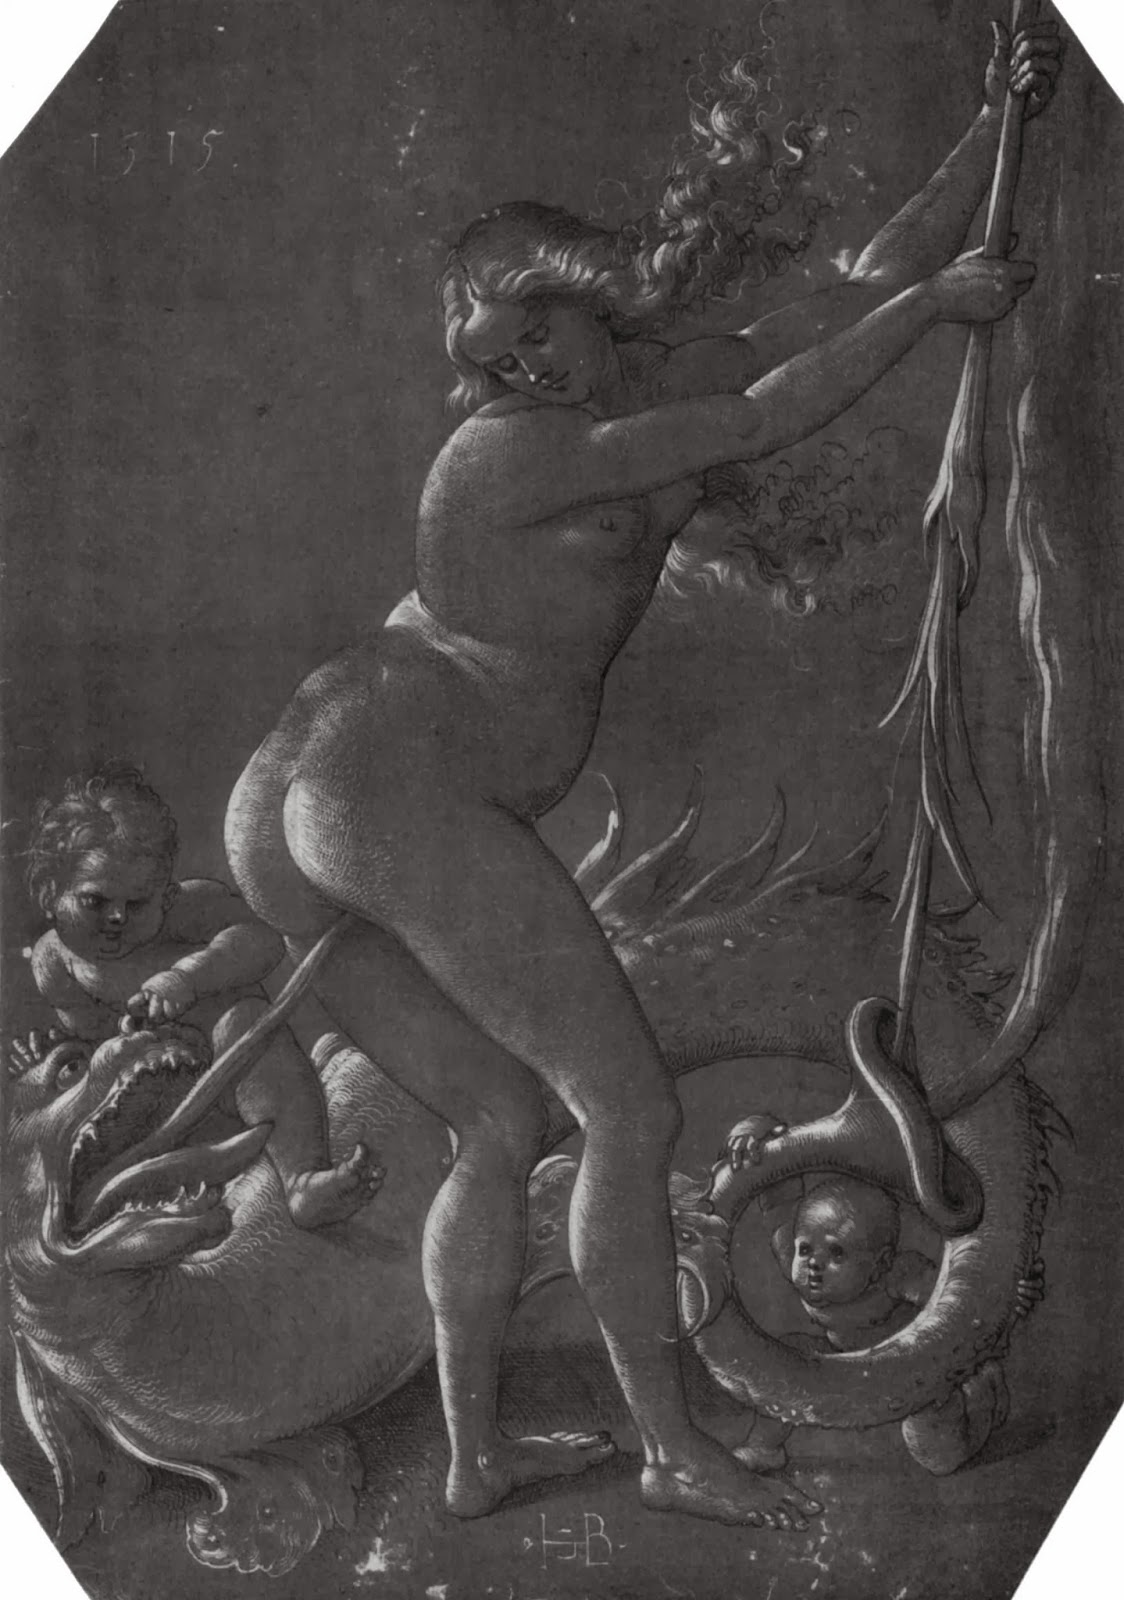 """Standing Witch With Monster"" Hans Baldung (1515), engraving, devil sticking his tongue in a witche's crotch, suggestion of witches masturbating with hallucinogens, medieval witches"